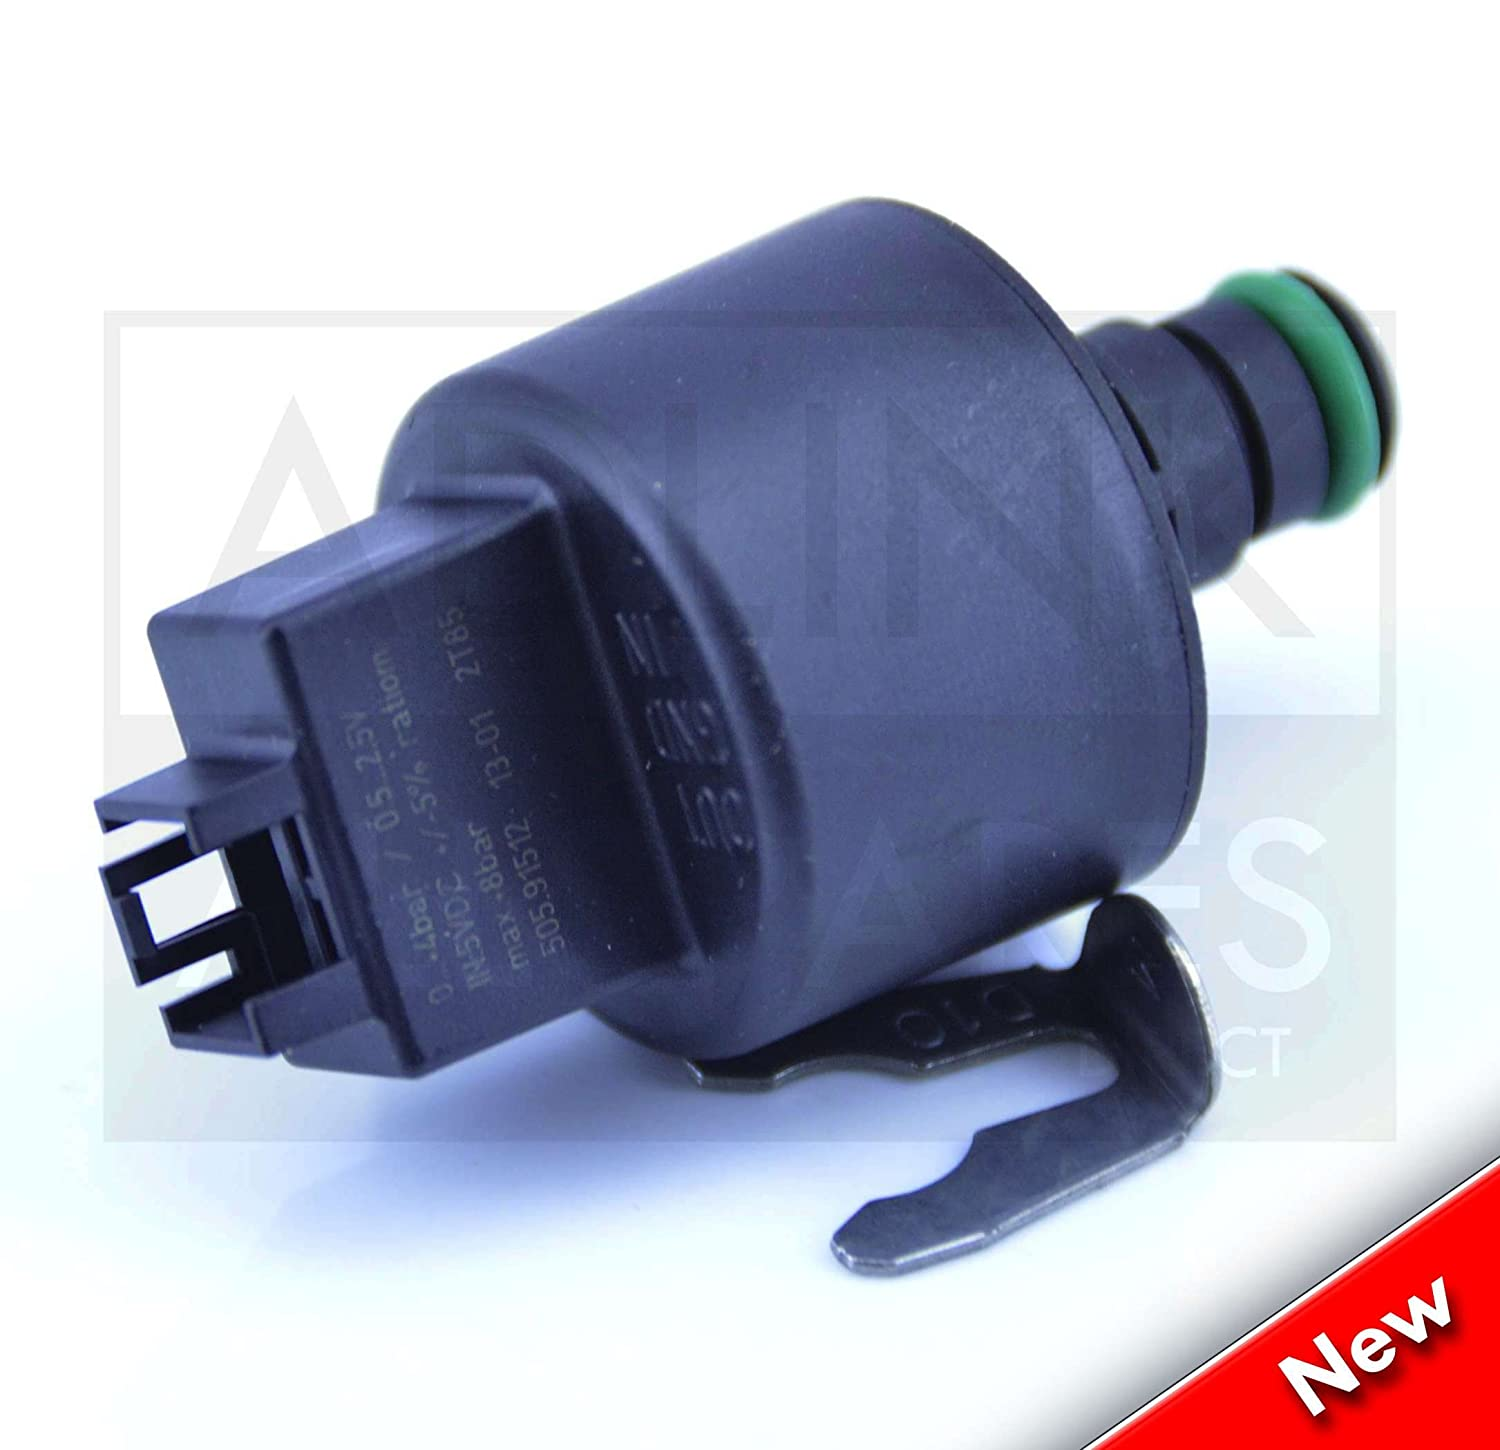 Boilers & Accessories IDEAL LOGIC PLUS 24 30 35 & SYSTEM 15 18 24 30 LOW WATER PRESSURE SWITCH 175596